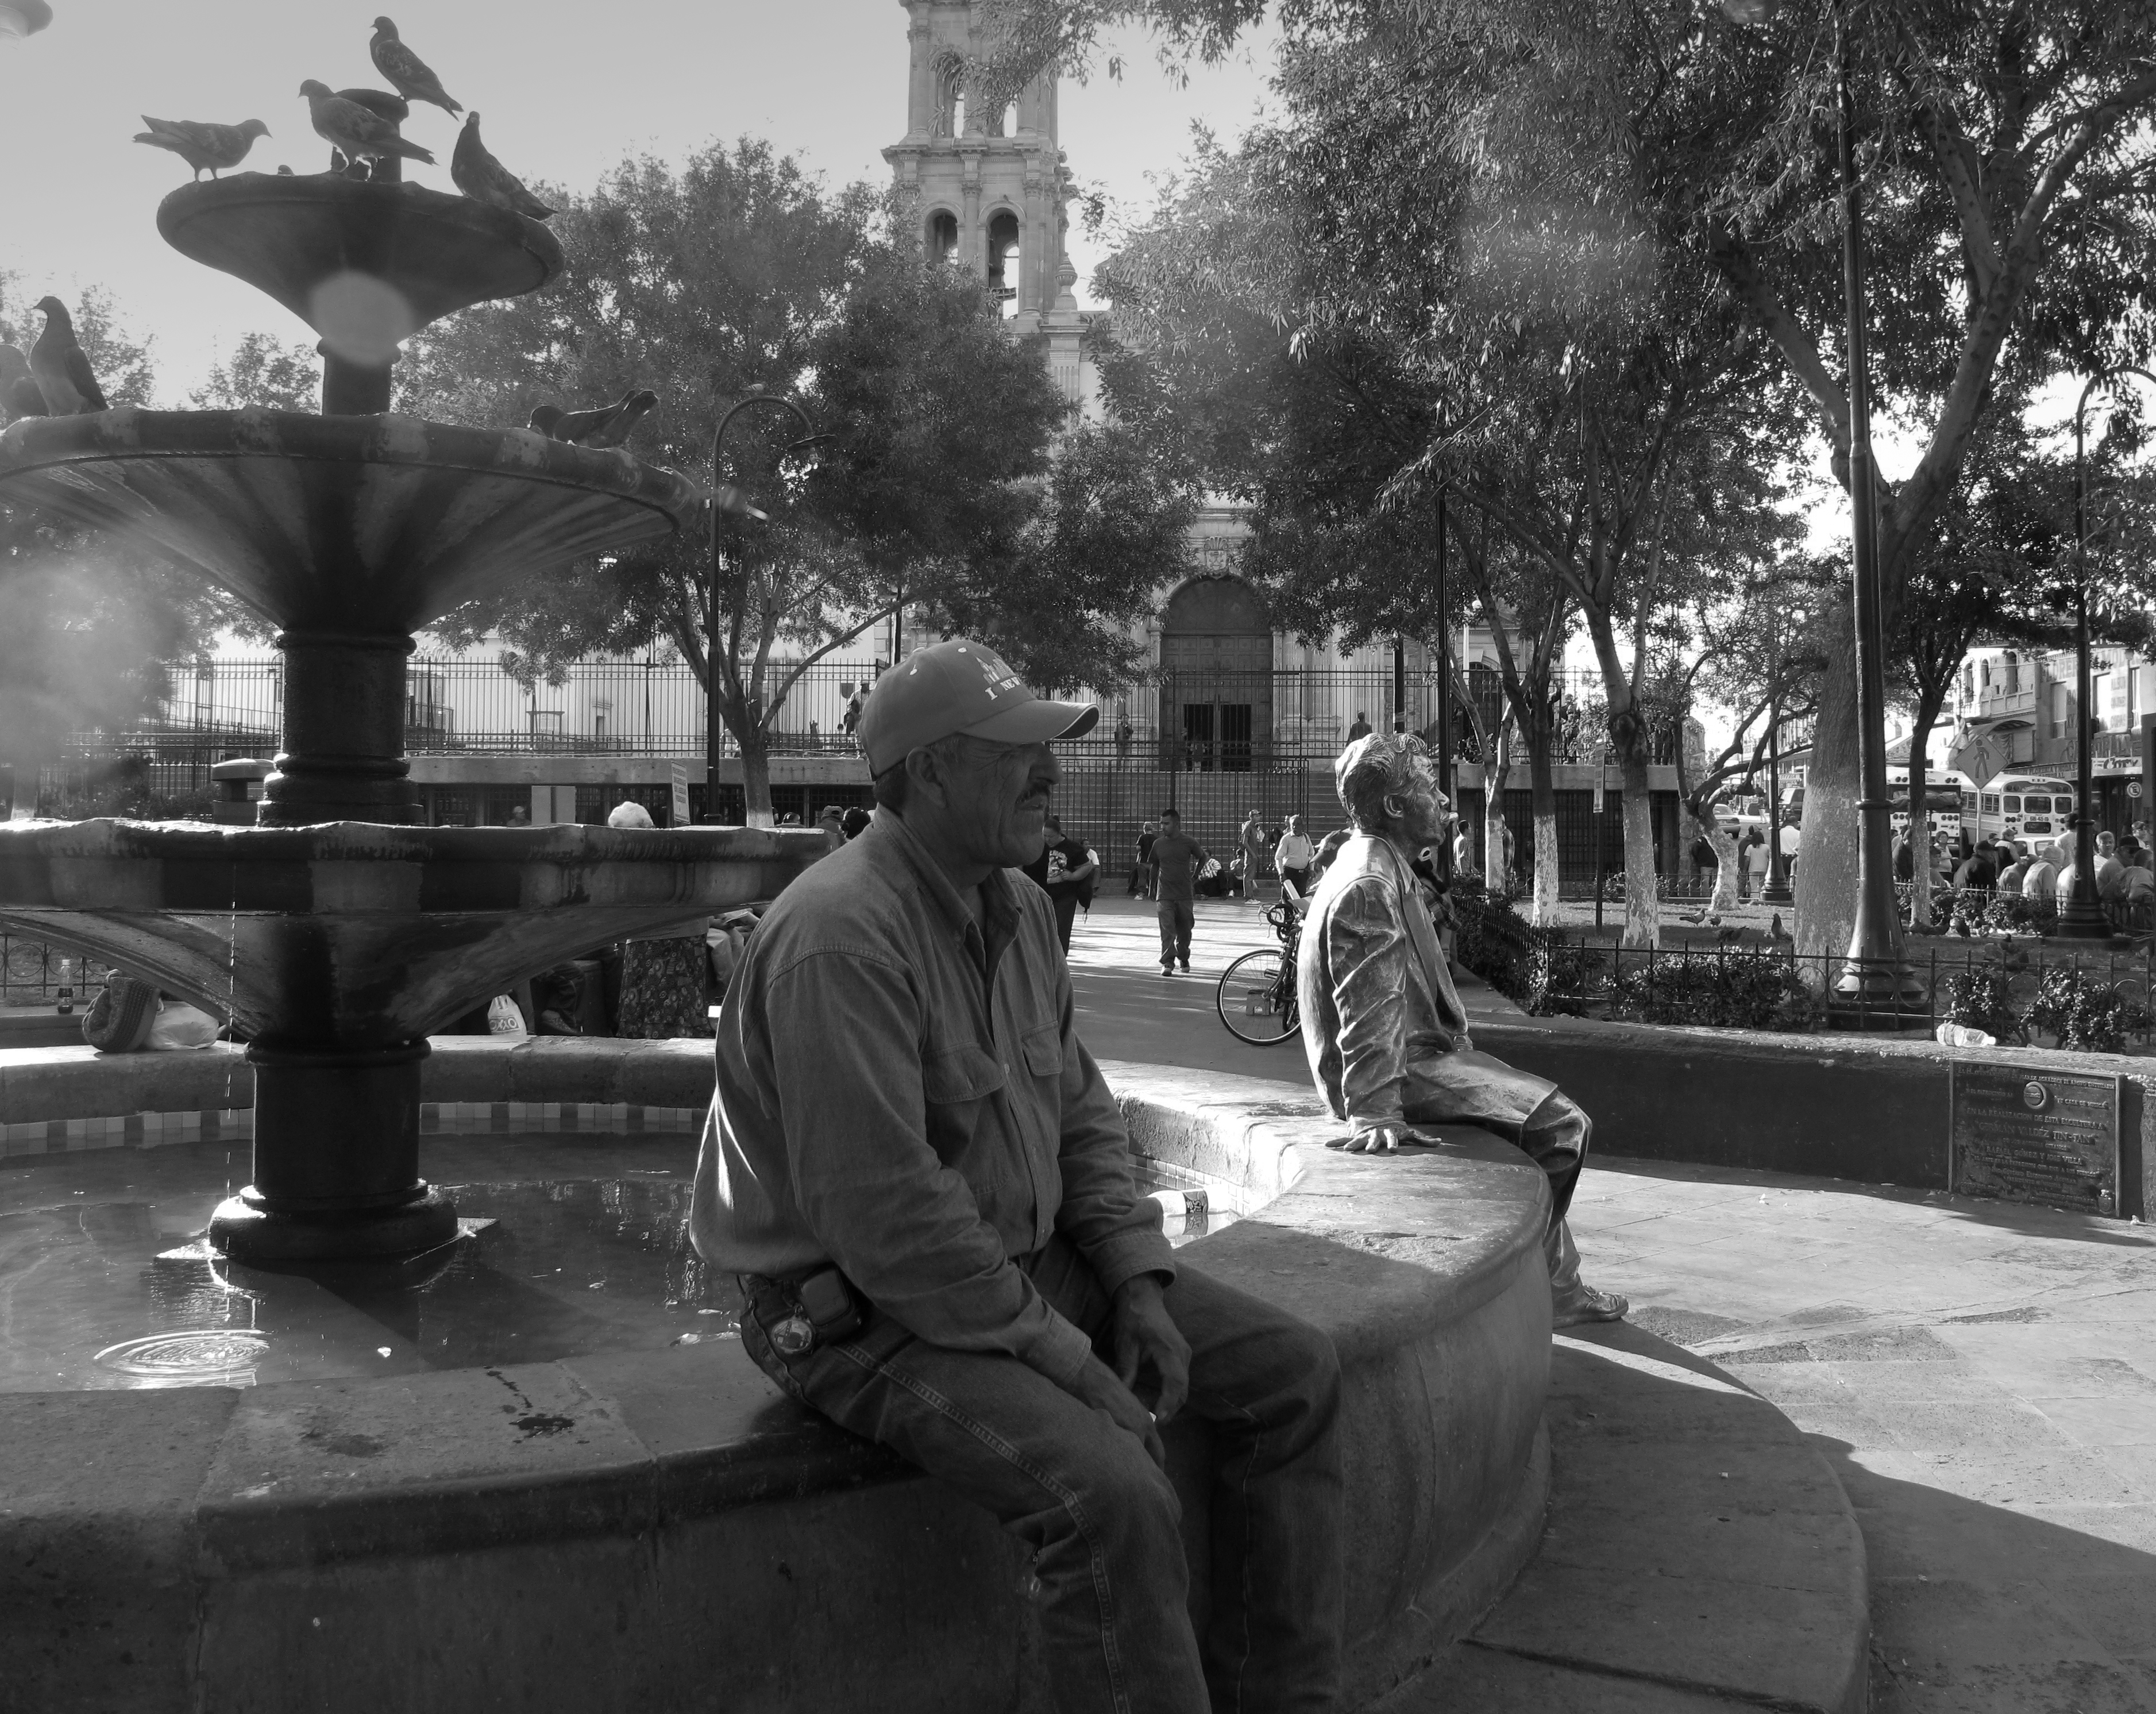 A man sits at a fountain next to a life size sculpture of a man in a park